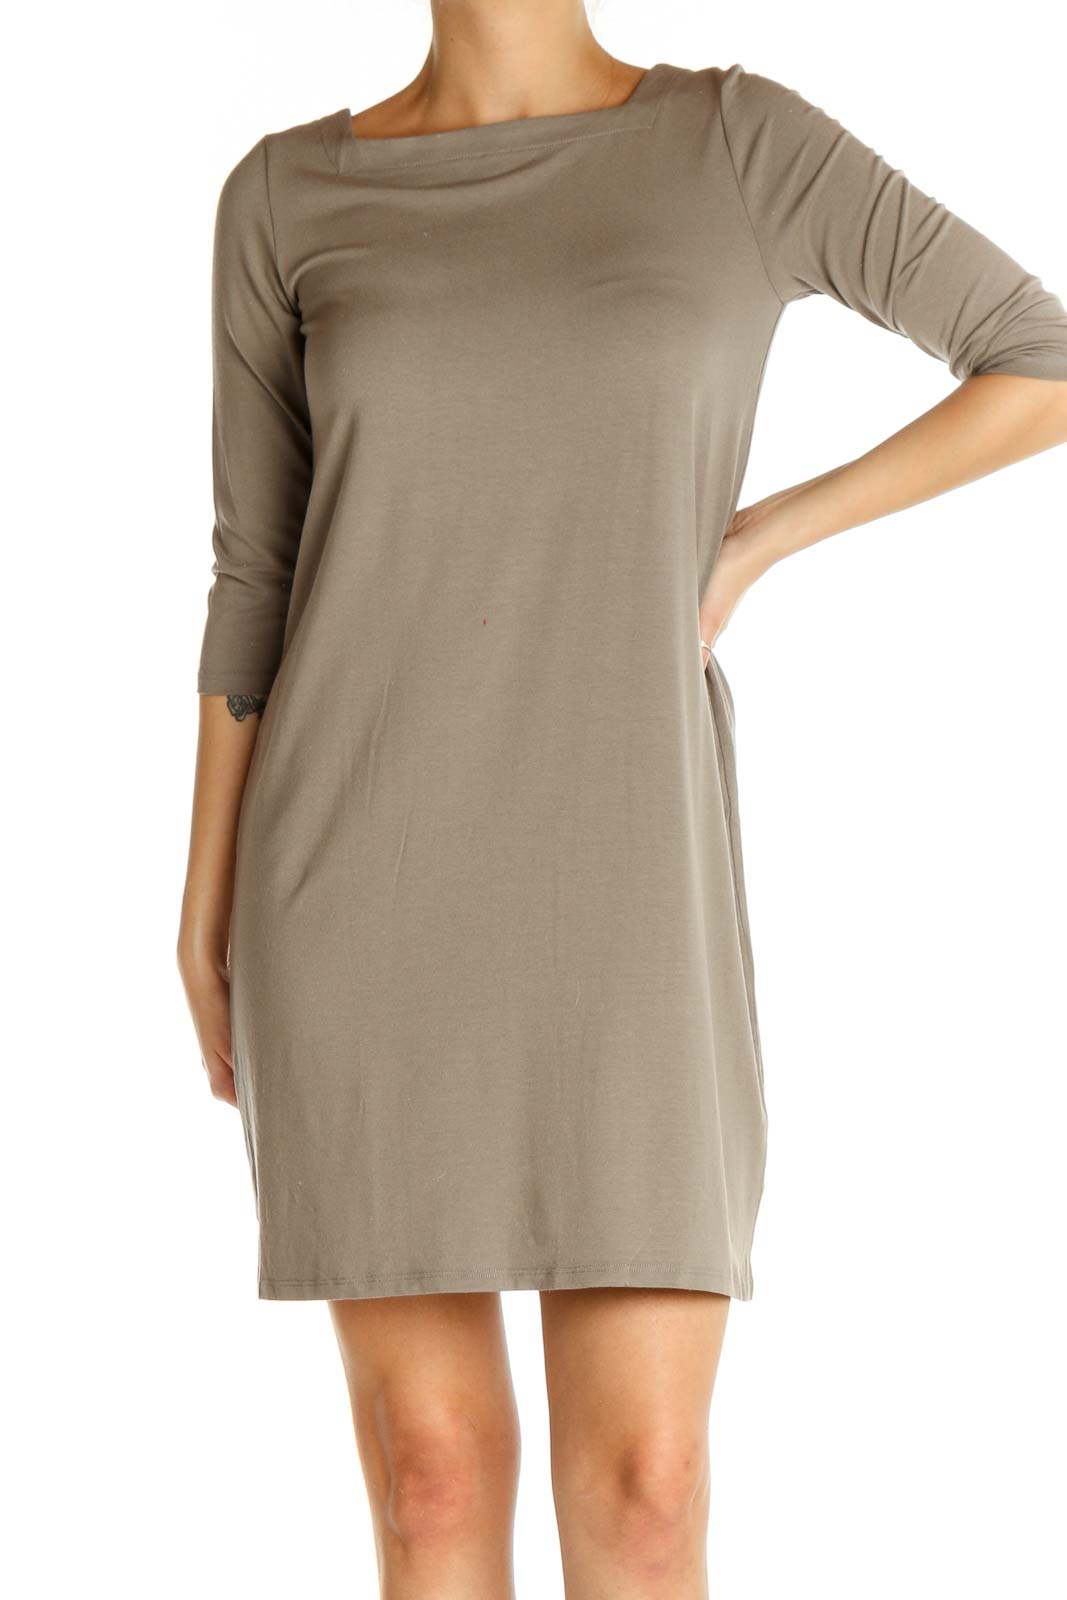 Gray Solid Classic Sheath Dress Front